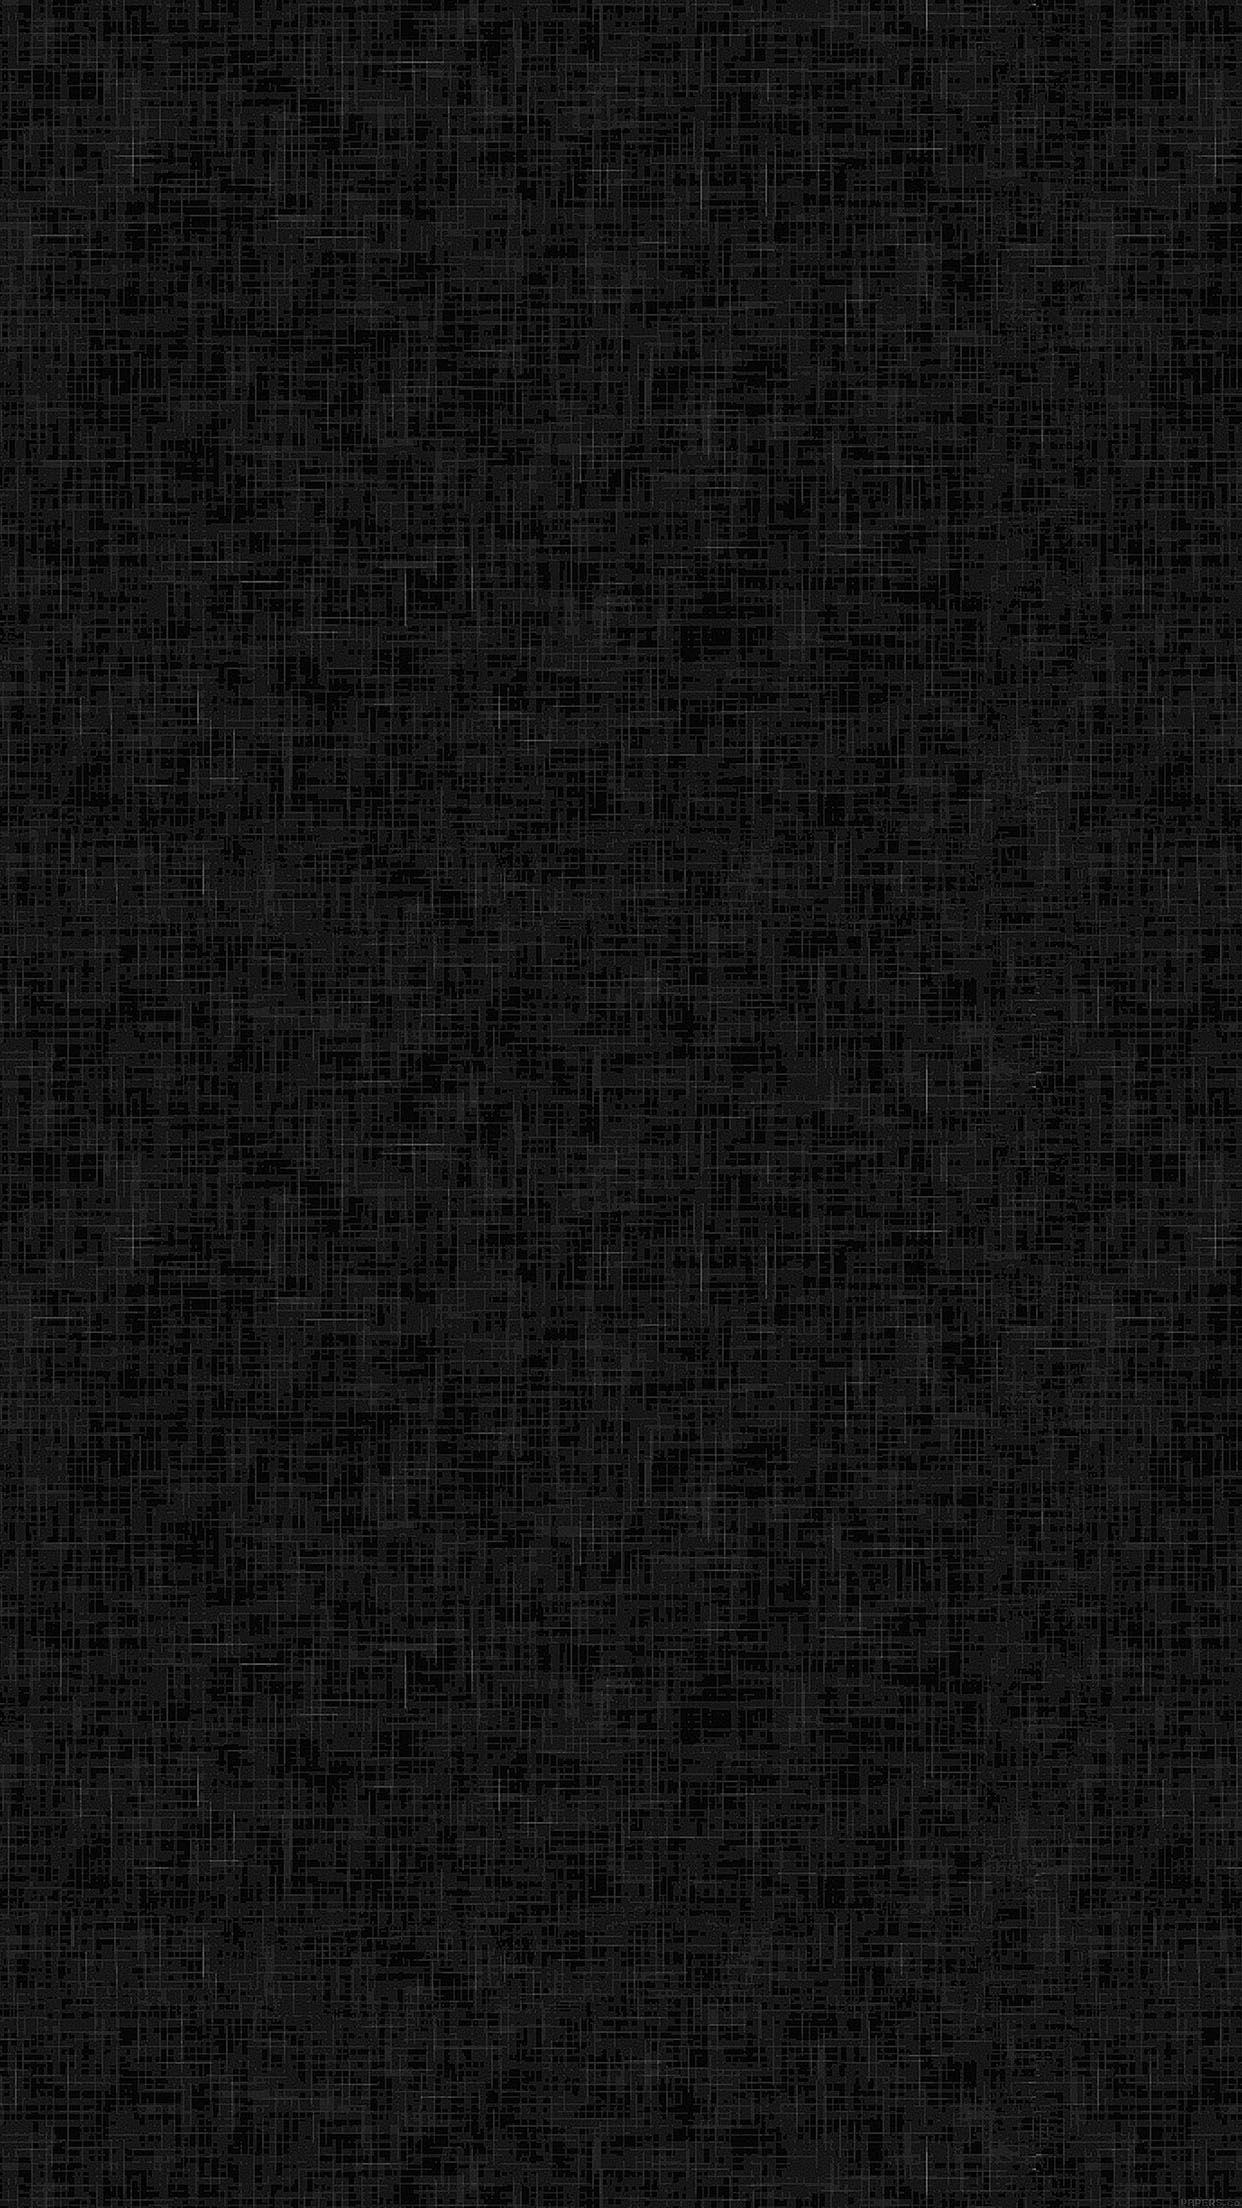 Iphonepapers Vb38 Wallpaper Furly Black Pattern Texture